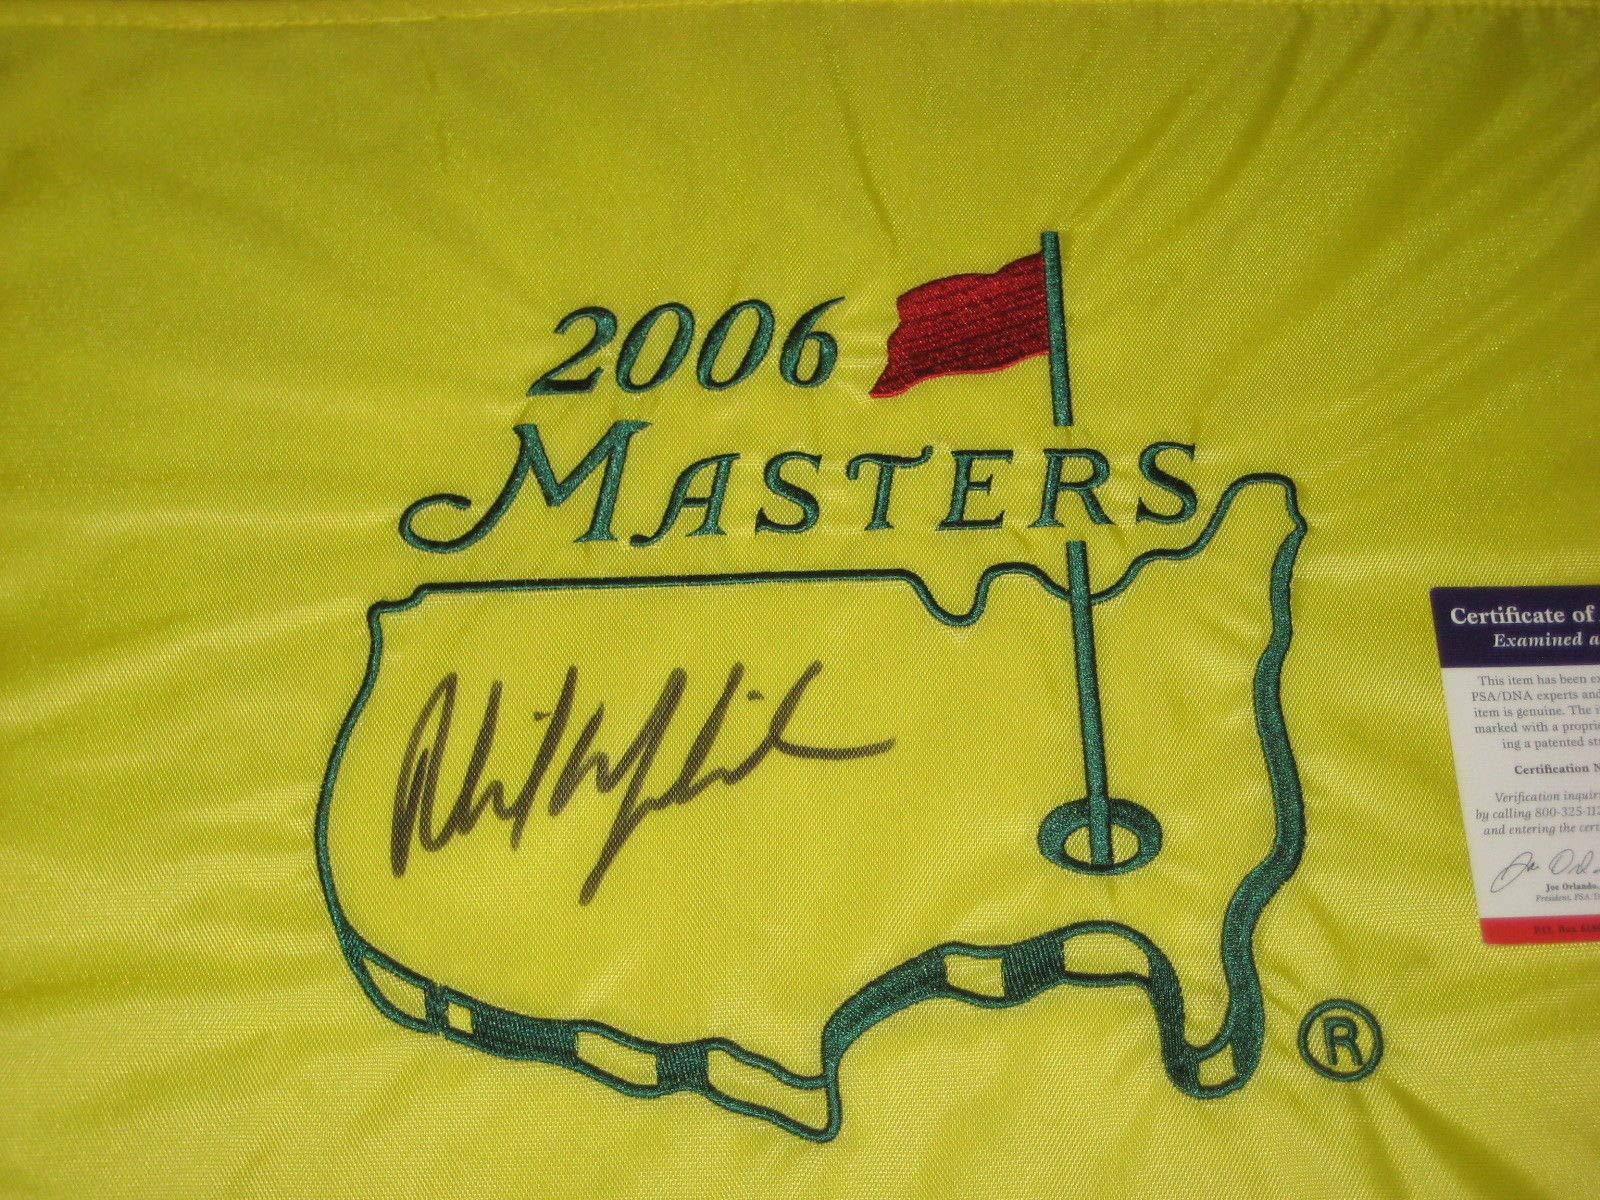 Phil Mickelson Pga Autographed Signed 2006 Masters Flag PSA/DNA Authentic